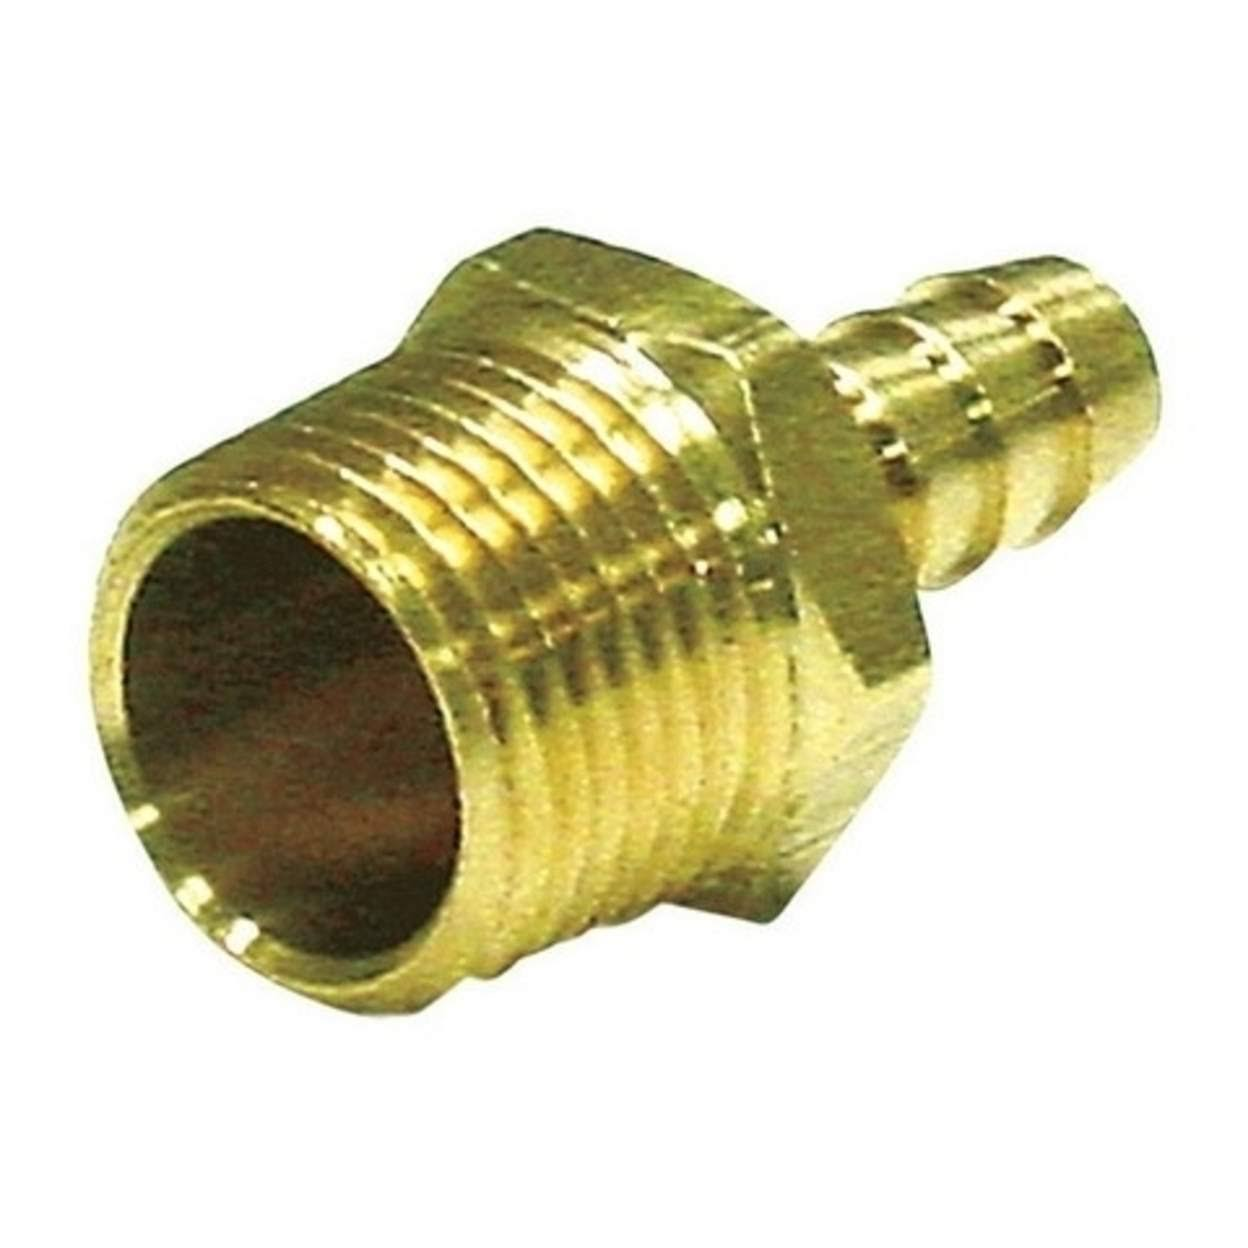 "Jmf Lead Free Hose Barb - 3/8"" x 1/8"", Yellow Brass"